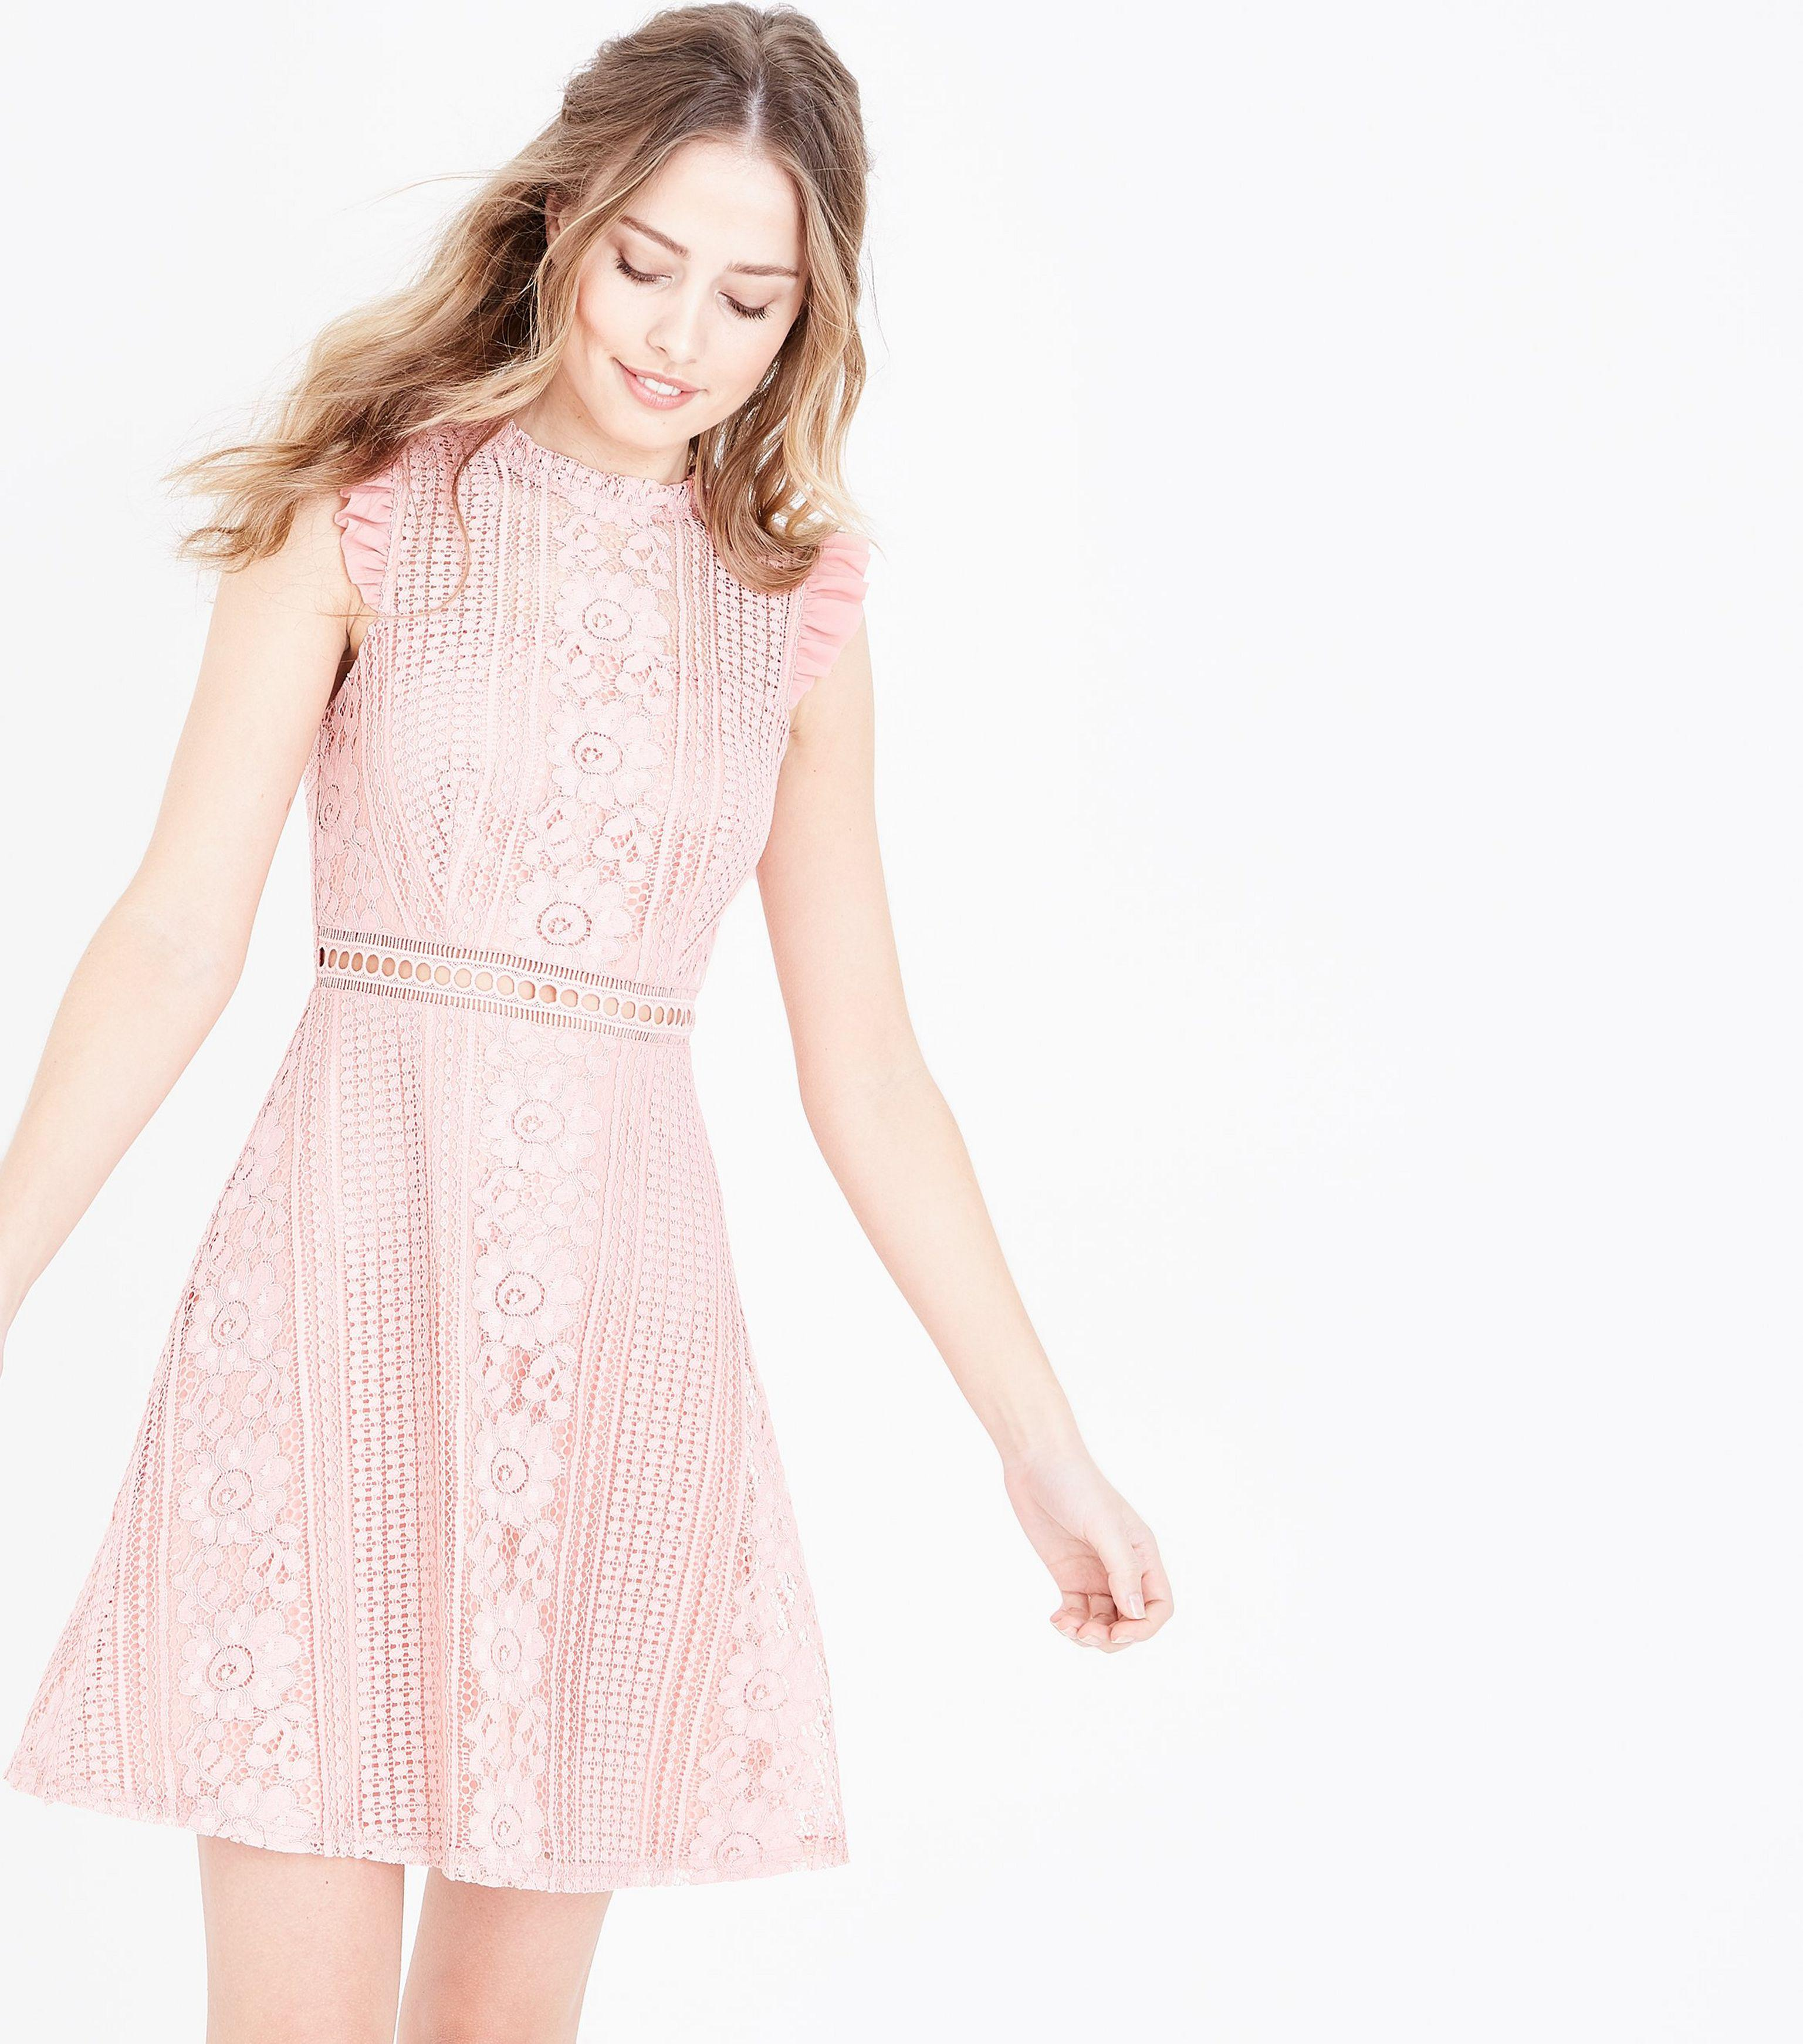 16be8ae17835de Gallery. Previously sold at: New Look · Women's Pink Dresses